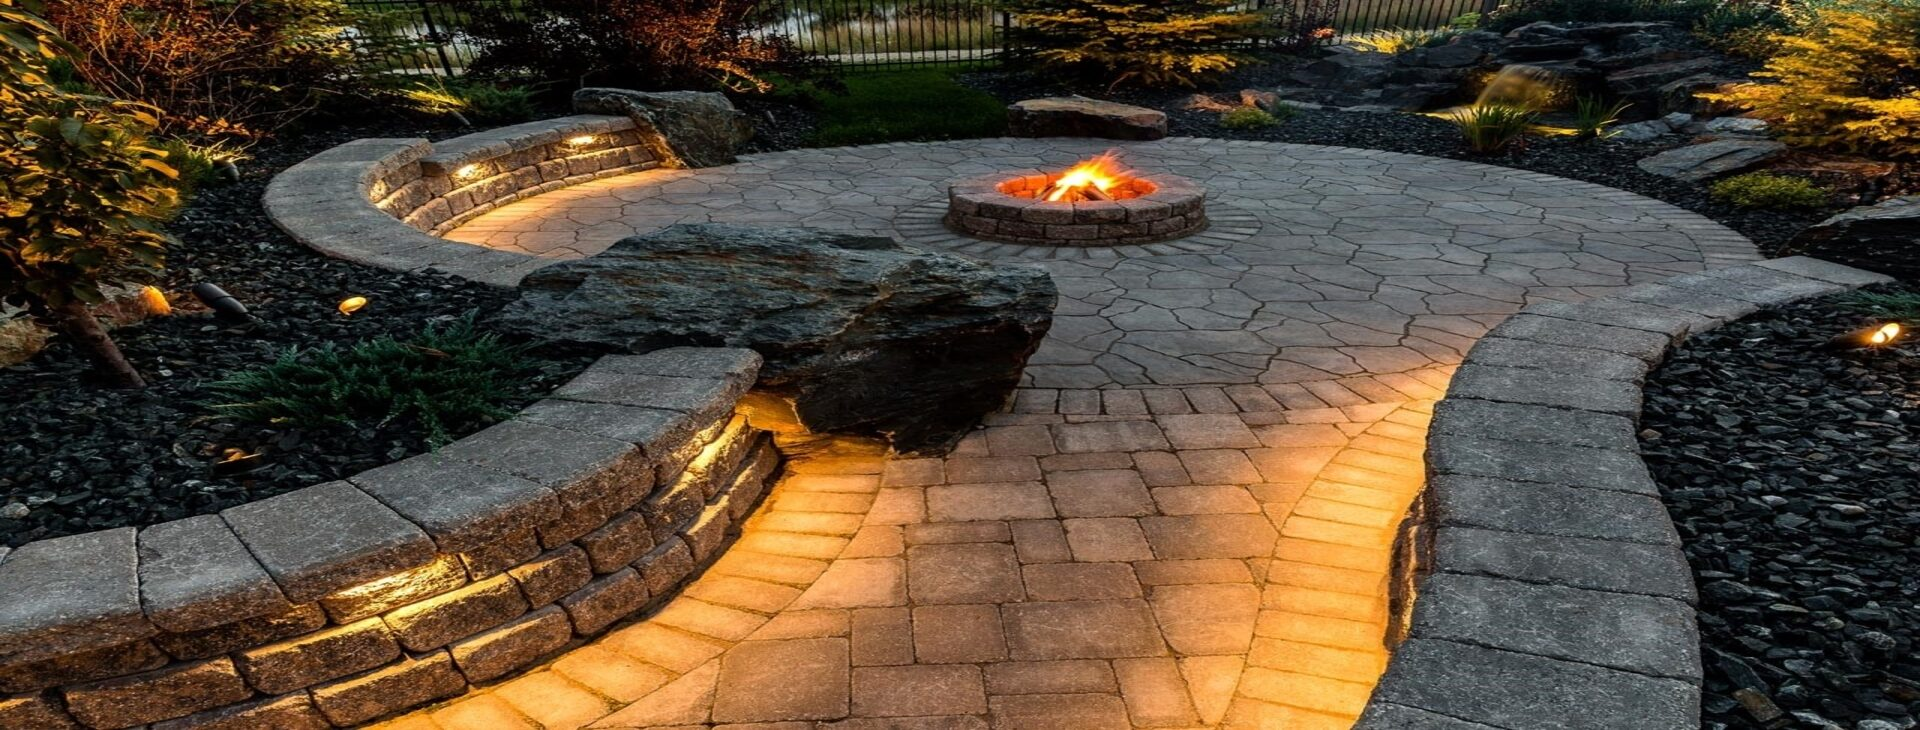 Everyone should have beautiful Outdoor Living Space